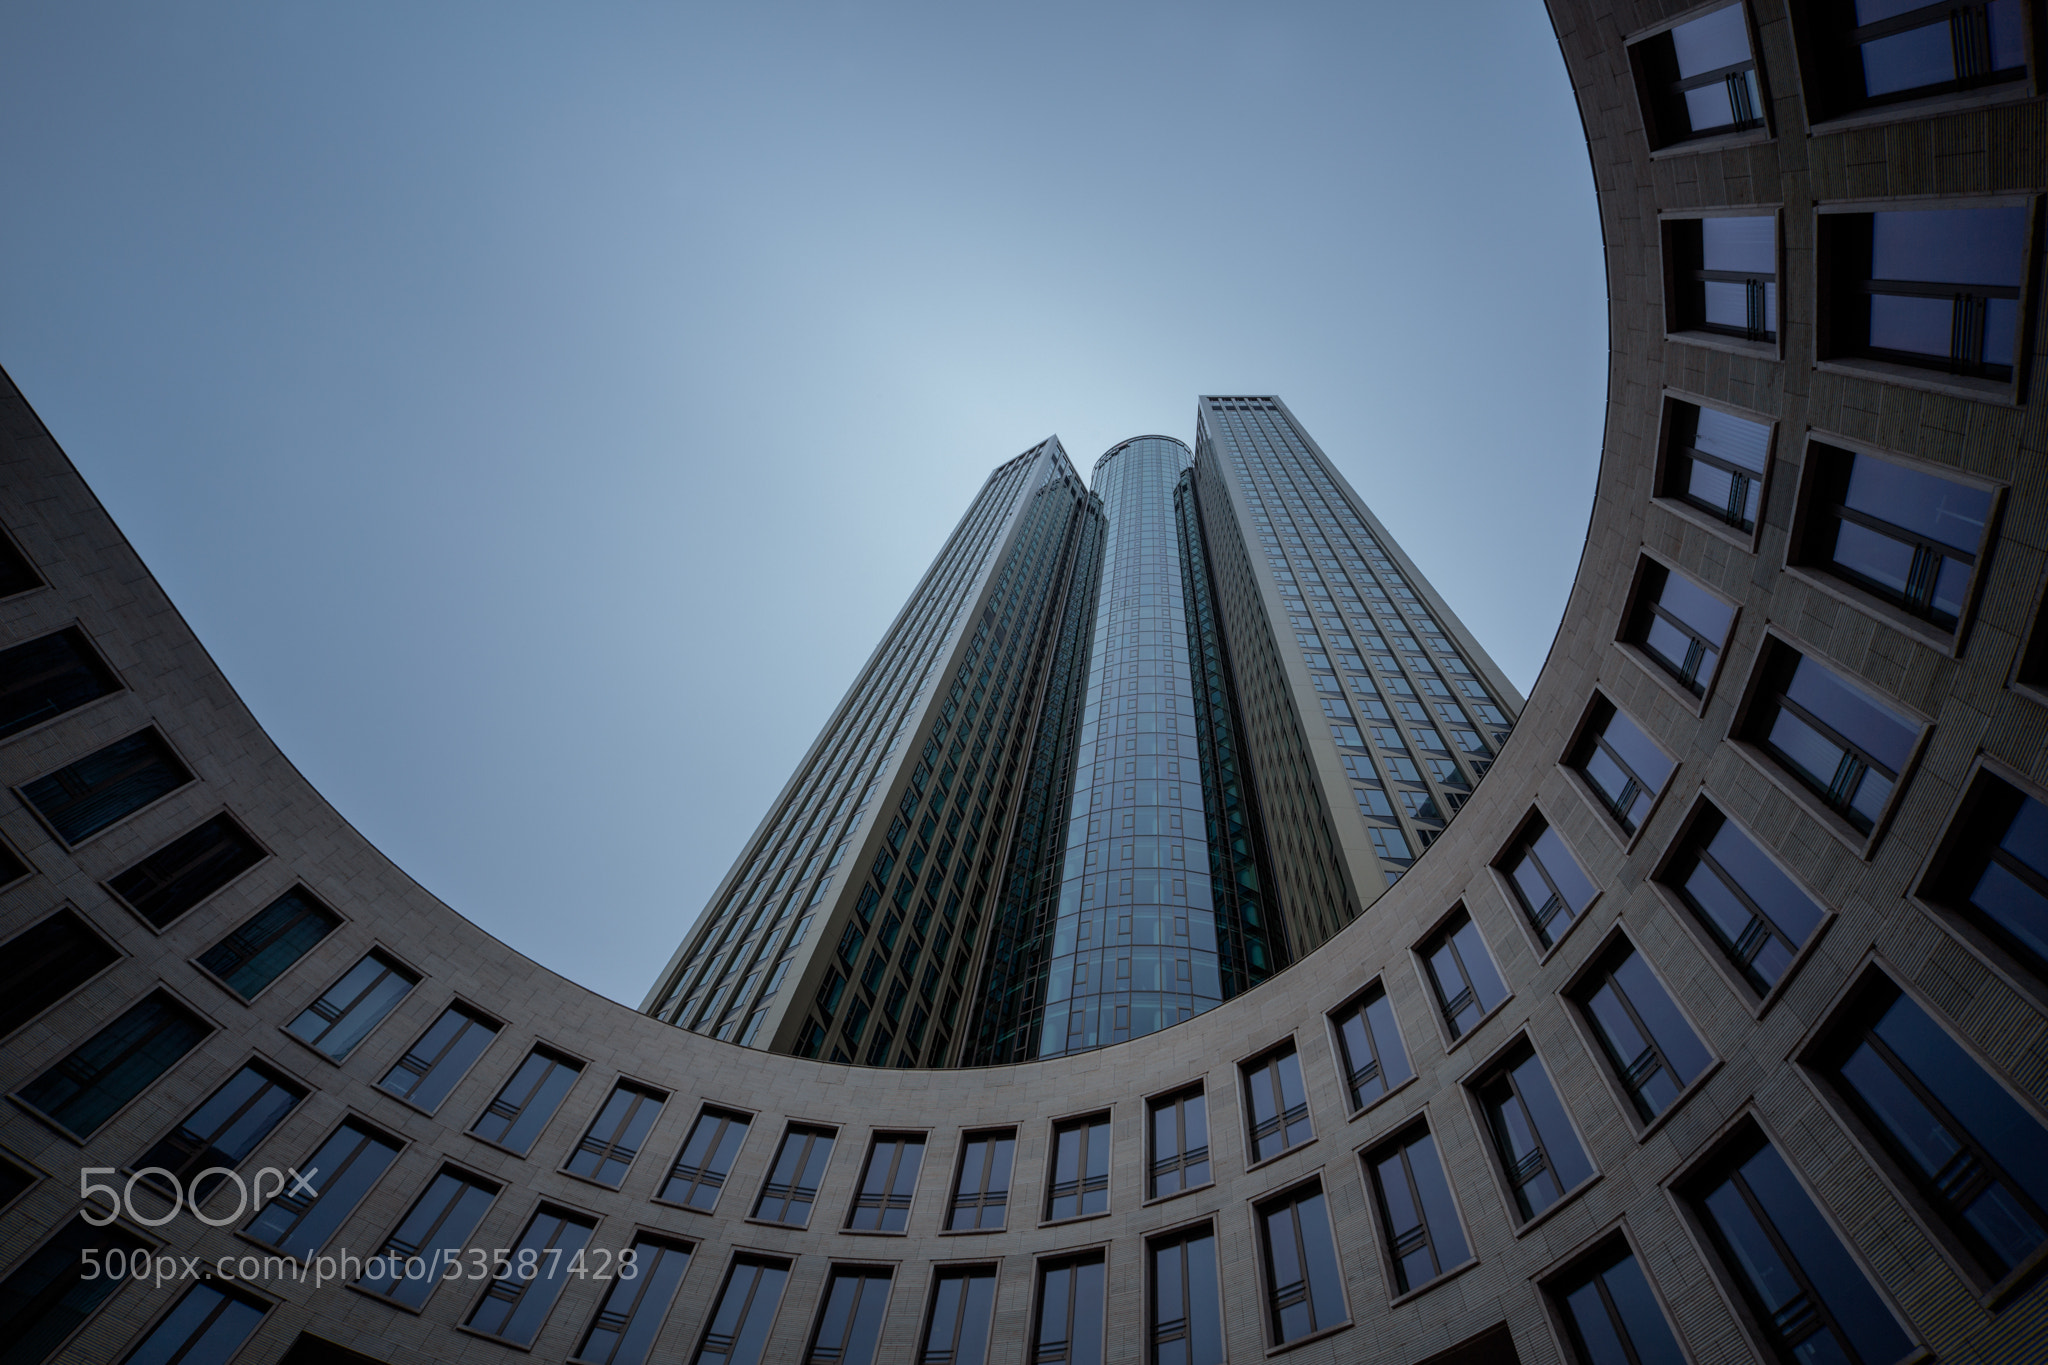 Photograph skyscraper by Christian Richter on 500px